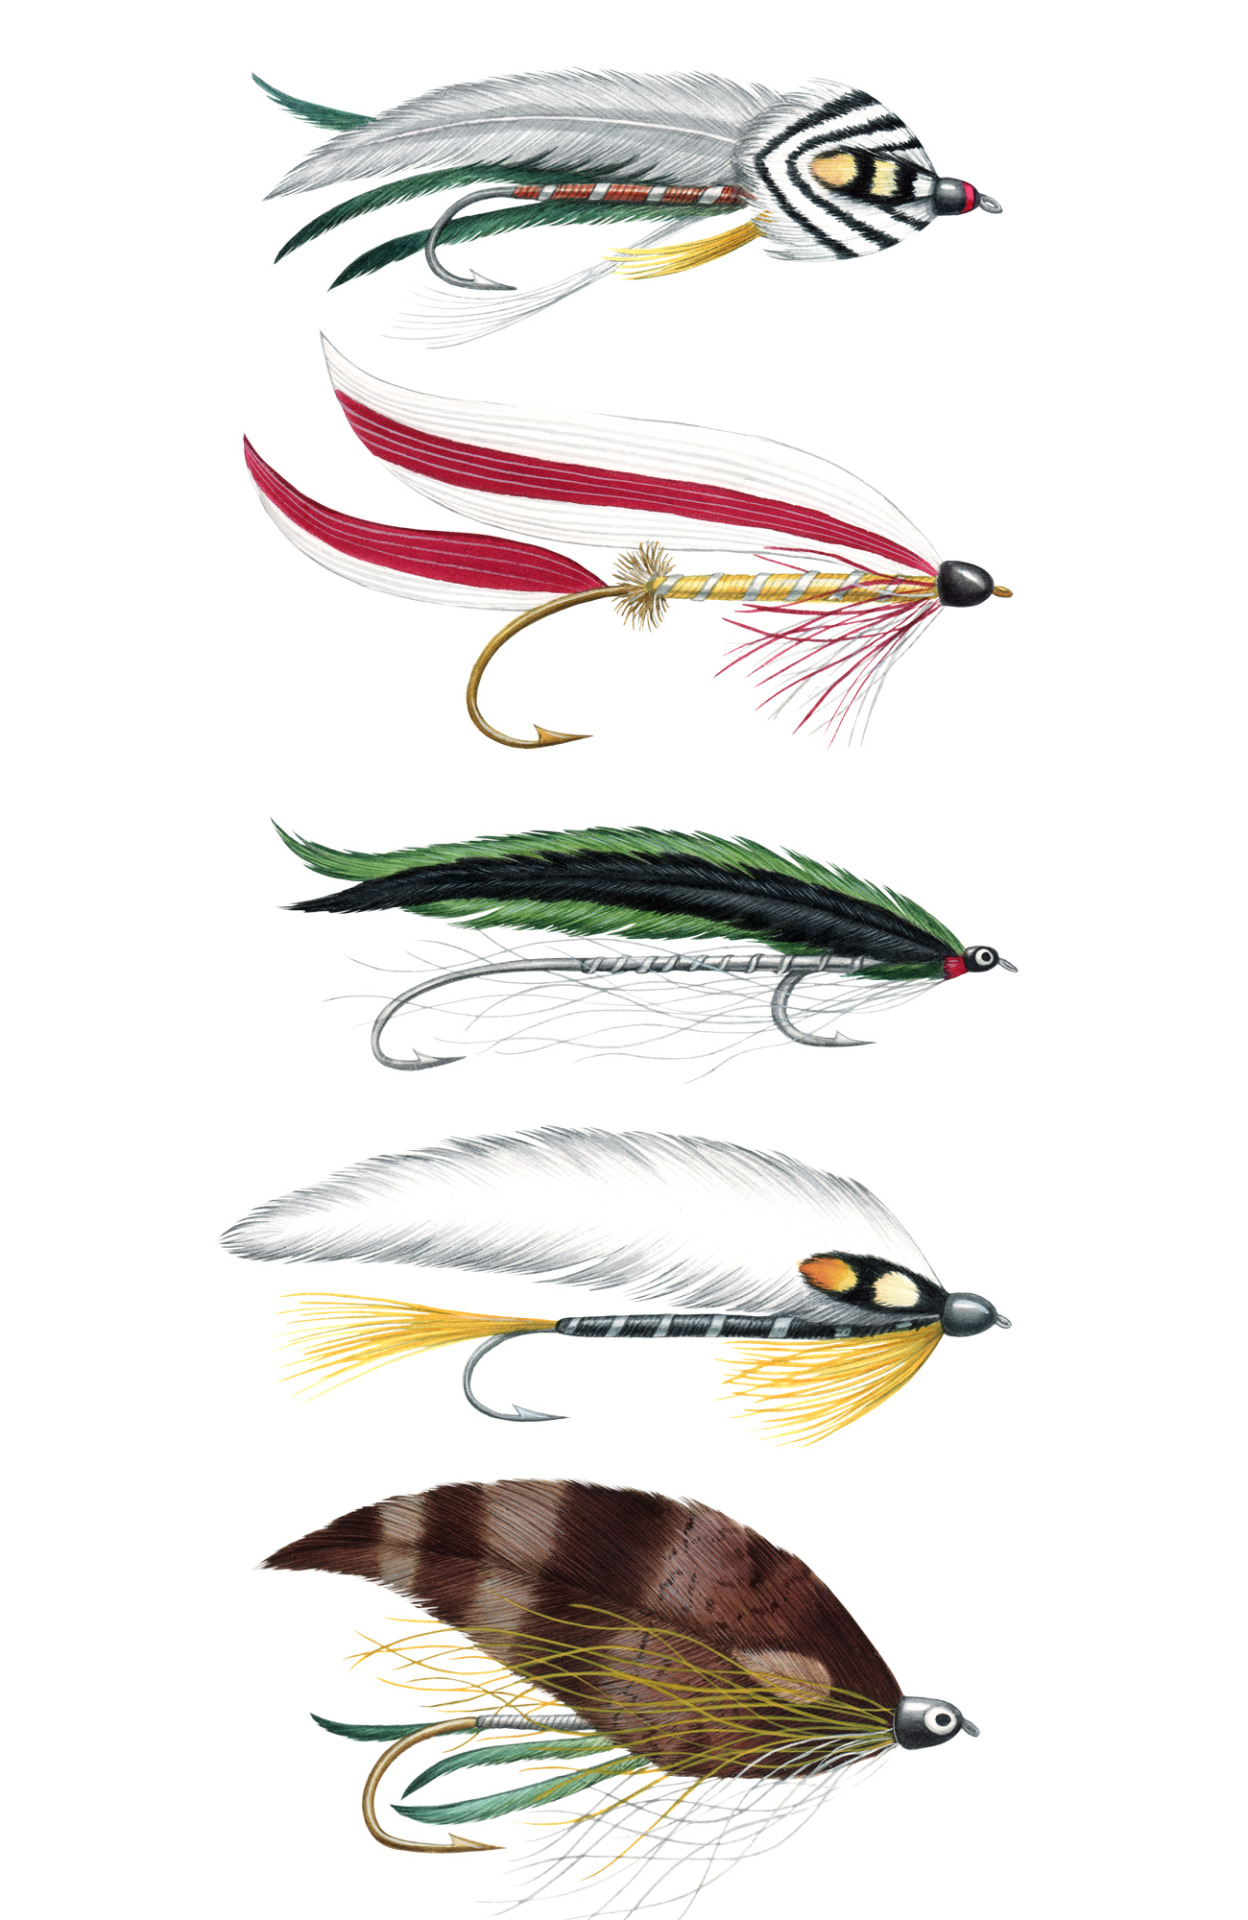 Just added a few fly fishing lures, painted for Down East Magazine to my Etsy shop. 5 X 7.5 inches. $65- each. Could make a great fathers day gift, for that special angler in your life. https://jadafitch.etsy.com/ #fly#fly fishing#fly lure#lure#fishing#fishing fure#feather#art#illustration#watercolor#jada fitch#Down East#DownEast #Down East Magazine #illustrator#Maine#artist#angler#fathers day#gift idea#fisherman#flylure#black ghost#gray ghost#paramanchee belle#bingham special#nine-three#lures#fishing lures